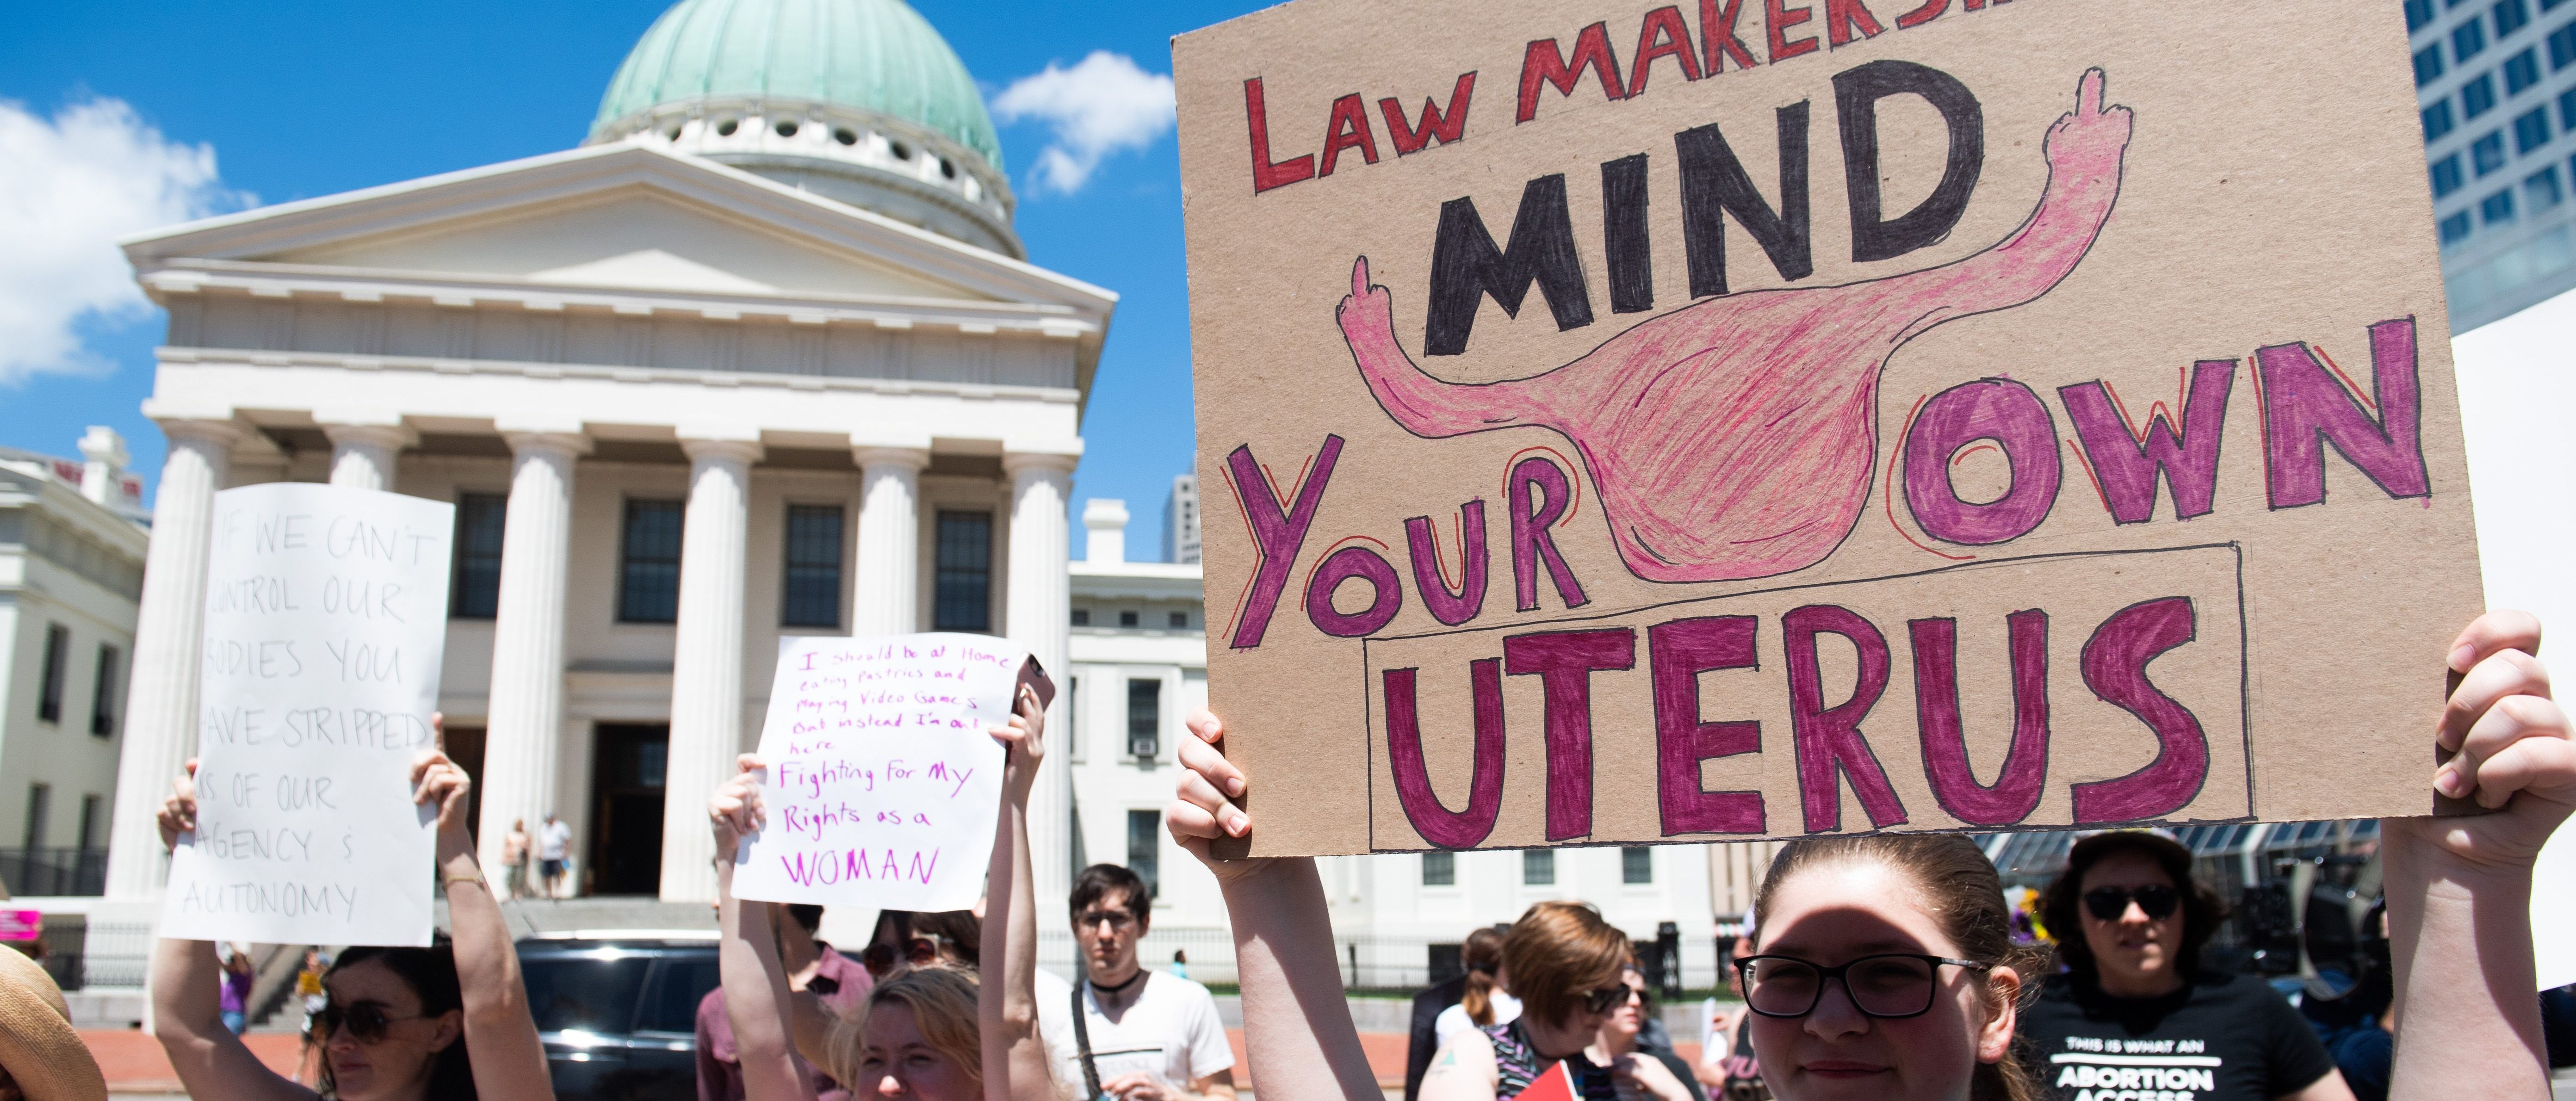 TOPSHOT - Thousands of demonstrators march in support of Planned Parenthood and pro-choice as they protest a state decision that would effectively halt abortions by revoking the license of the last center in the state that performs the procedure, during a rally in St. Louis, Missouri, May 30, 2019. (Photo by SAUL LOEB / AFP) (Photo credit should read SAUL LOEB/AFP/Getty Images)